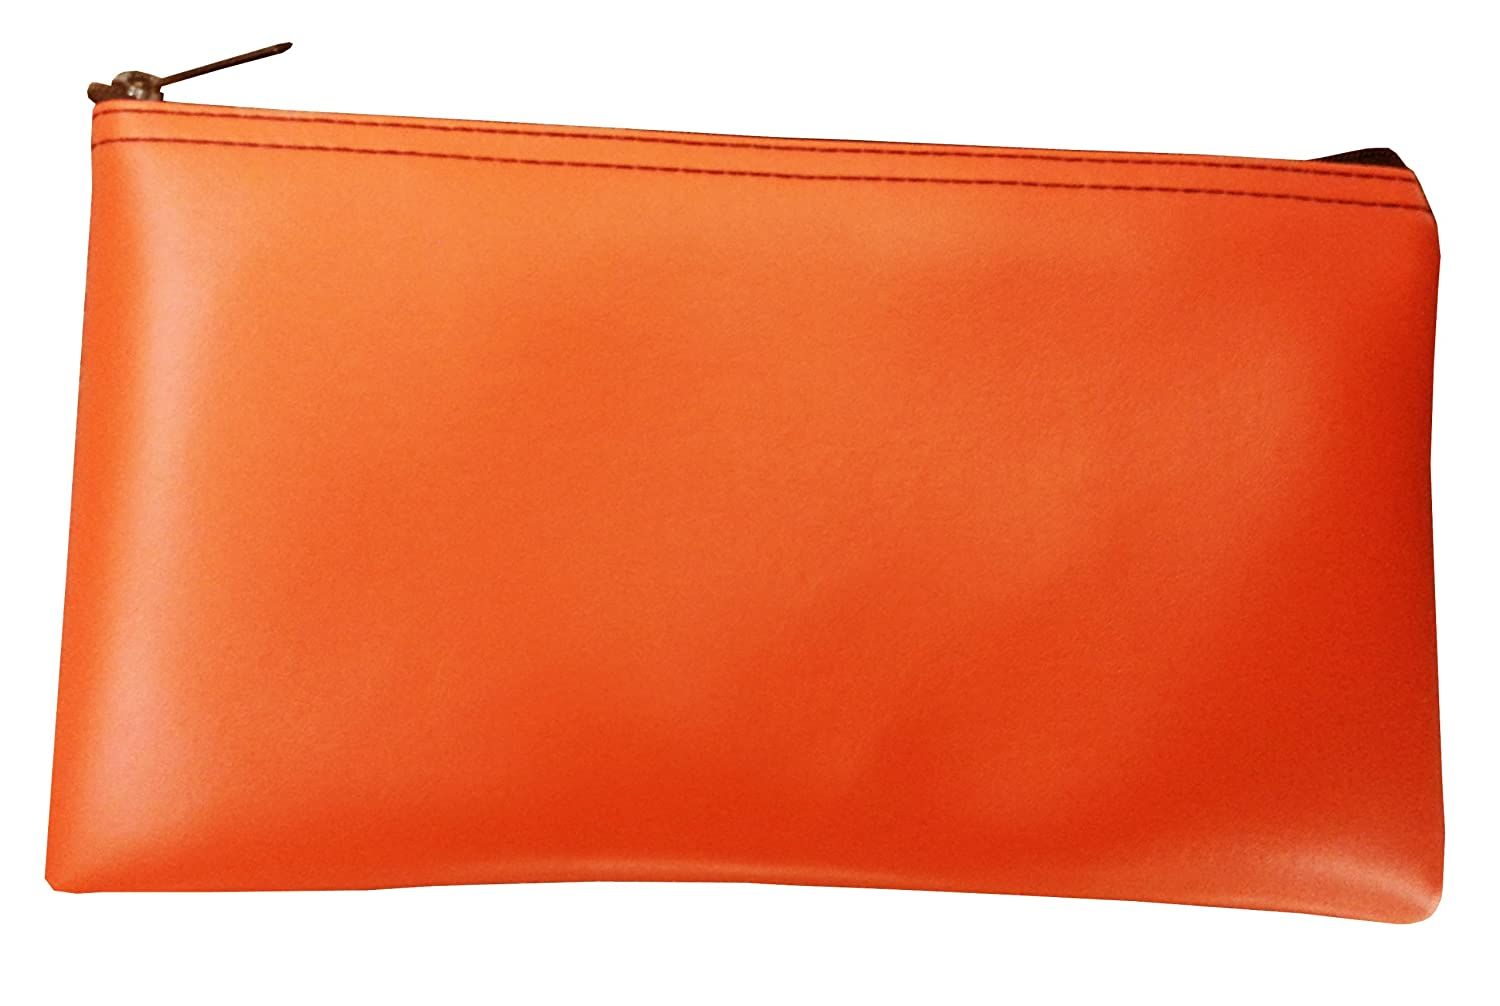 Cardinal Bag Supplies Vinyl Zipper Bags Leatherette 11 x 6 inches Small Compact Orange 1 Zippered Pouch CW